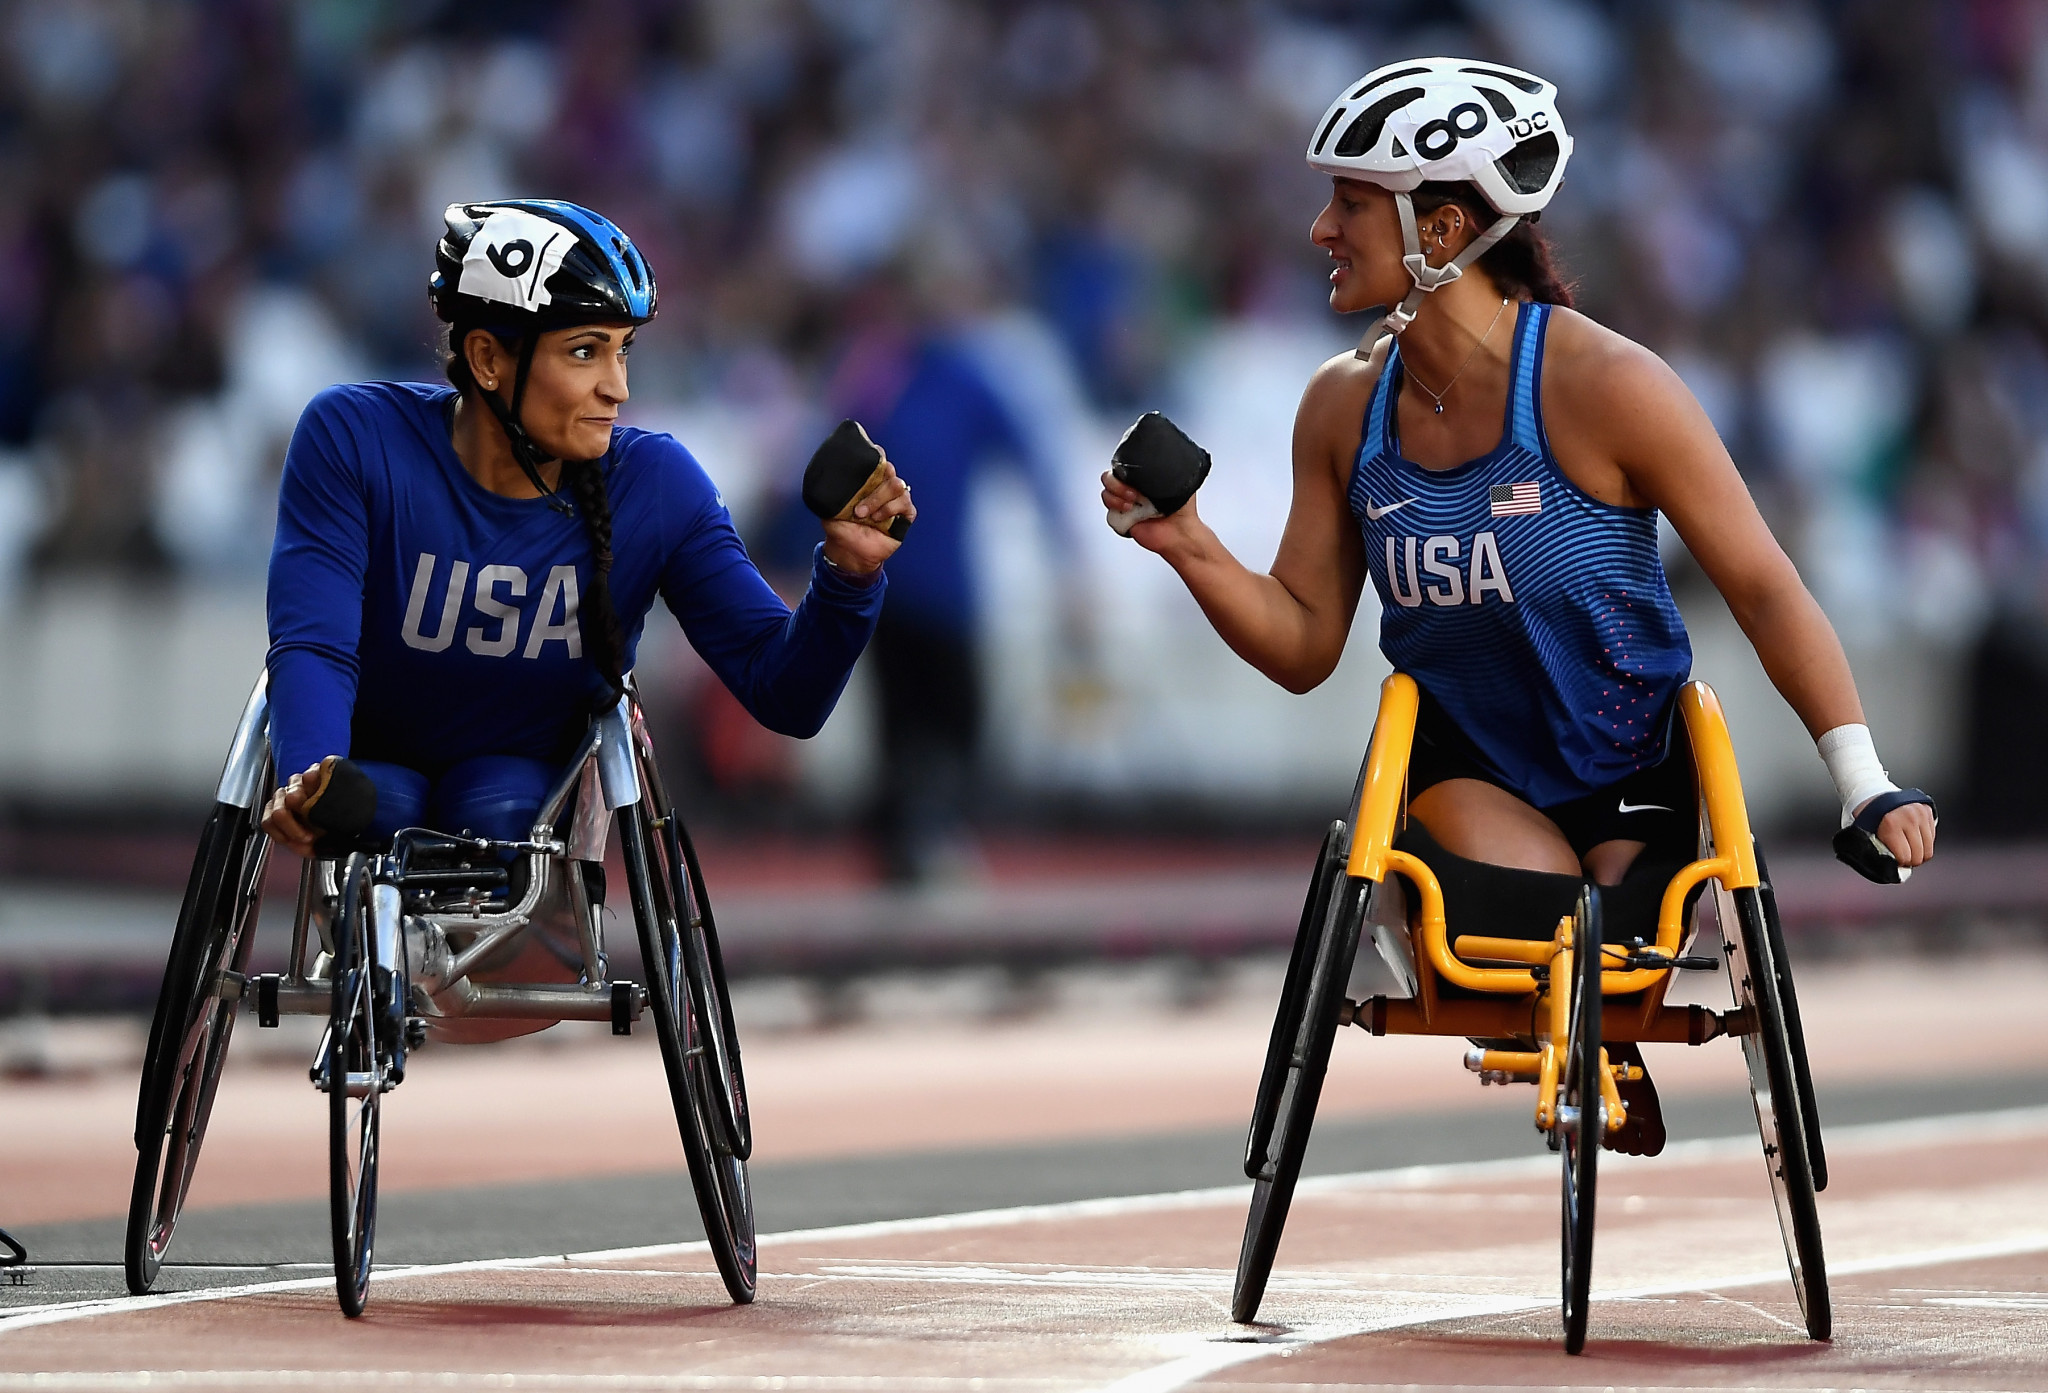 Biographical information will be collected and updated by Gracenote sports editors at next year's World Para Athletics Championships in the build-up to Tokyo 2020 ©Getty Images